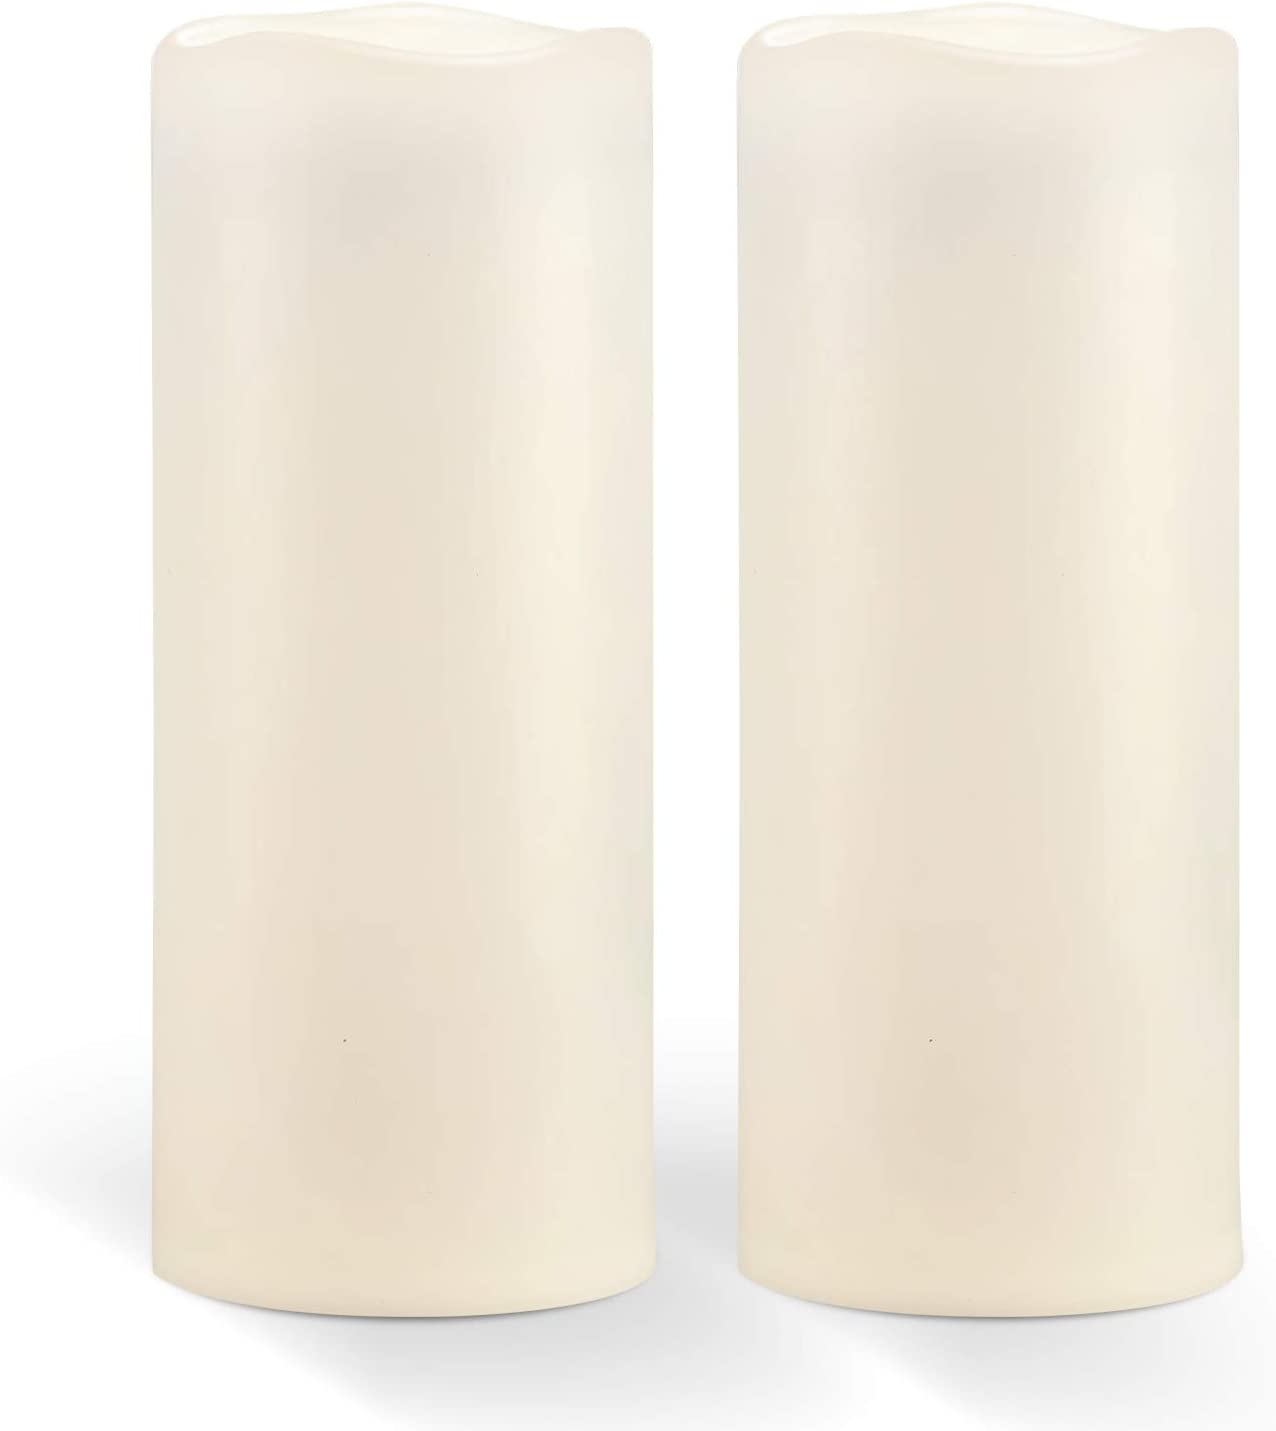 """Homemory 10"""" x 4"""" Waterproof Outdoor Flameless Candles - Battery Operated Flickering LED Pillar Candles for Indoor Outdoor Lanterns, Long Lasting, Large, Set of 2"""